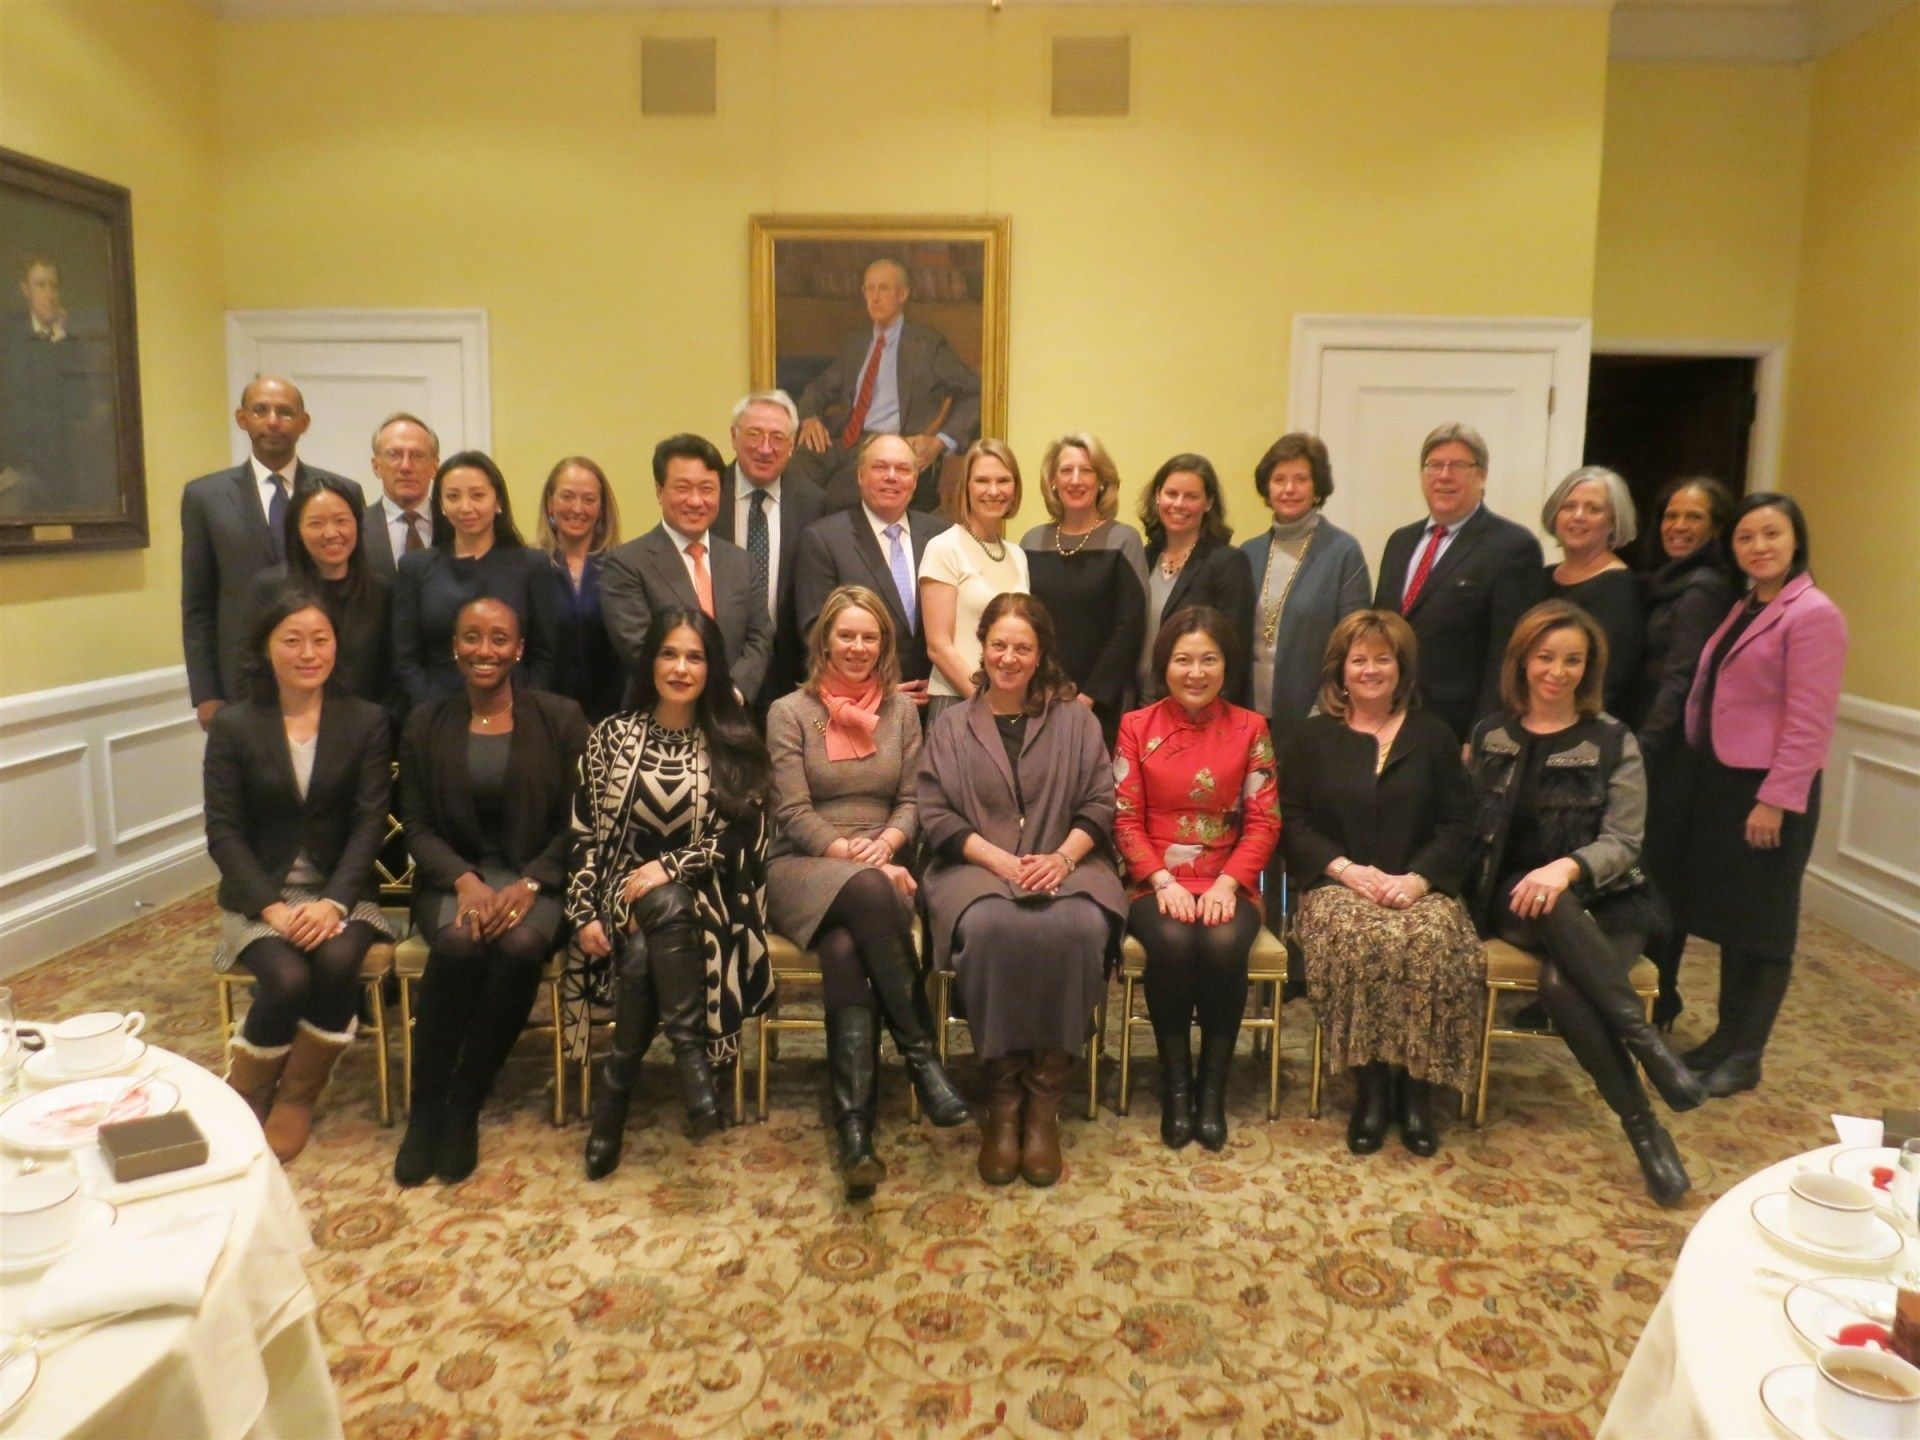 January 21, 2016. International Advisory Committee Welcome Luncheon. Trustees, Ancients, parents and friends gathered at the Harvard Club of NYC to celebrate the launch of the International Advisory Committee for Miss Porter's School. Pictured are (front row left to right): Yasuko Nagase '96 (Tokyo), Pippa Tubman Armerding '86 (Johannesburg), Martha E. Debayle P'17 (Mexico City), Dr. Katherine G. Windsor, Susan E. Pick '70 (Mexico City), Baojun Gao P'17 (Shanghai), Sharon McQuade P'11, Fiona Cibani P'19; (back row left to right): Dr. Vivek Mohindra P'19, Miyoung Lee '99, John C. Wilcox P'10, Annie Y. Zhou '02 (Beijing), Audrey L. Klein '83 (London), Dr. Wang Jun Lee P'17 (Seoul), Martin J. Nance P'15, Thomas G. Dudeck P'09, 05, Diana Russell Terlato '86, Fraser Bennett Beede '81, Karen T. Staib '90, Mimi Colgate Kirk '57, Dr. J. Michael McQuade P'11, Julia McCormack, Colleen Barnswell P'16 and Rebecca Yao P'19.